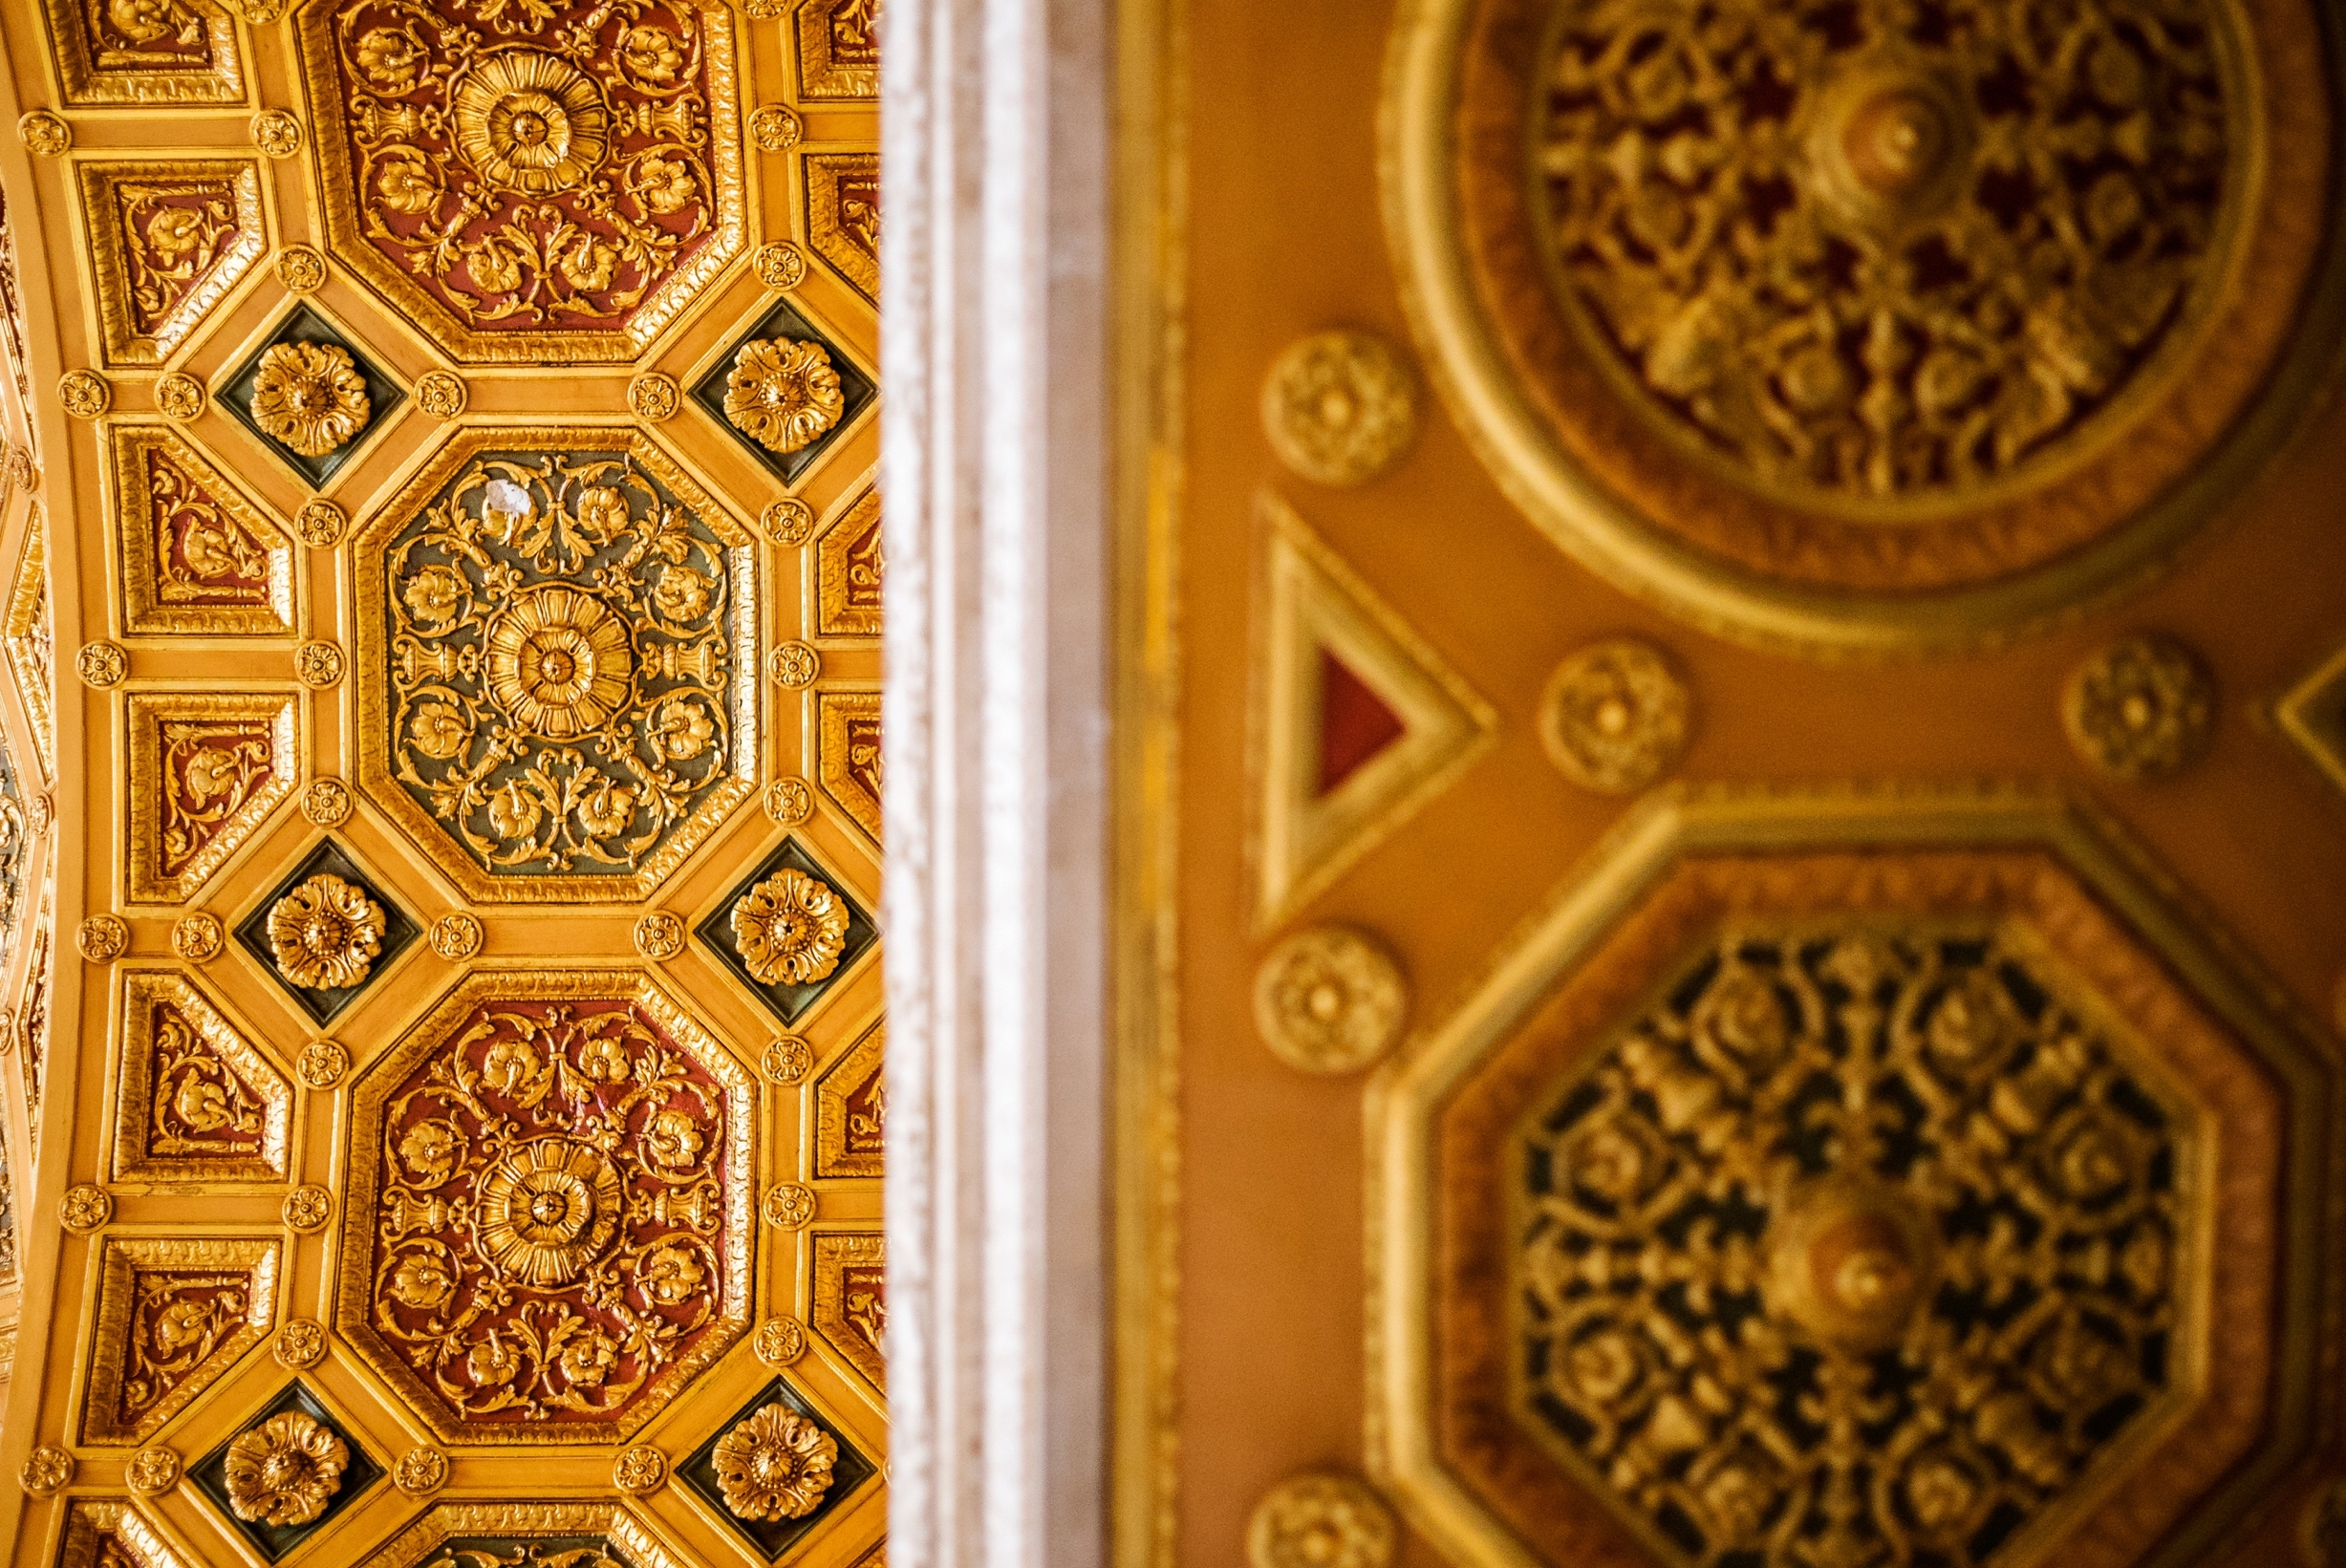 An ornate golden ceiling arch with detailed medallions.